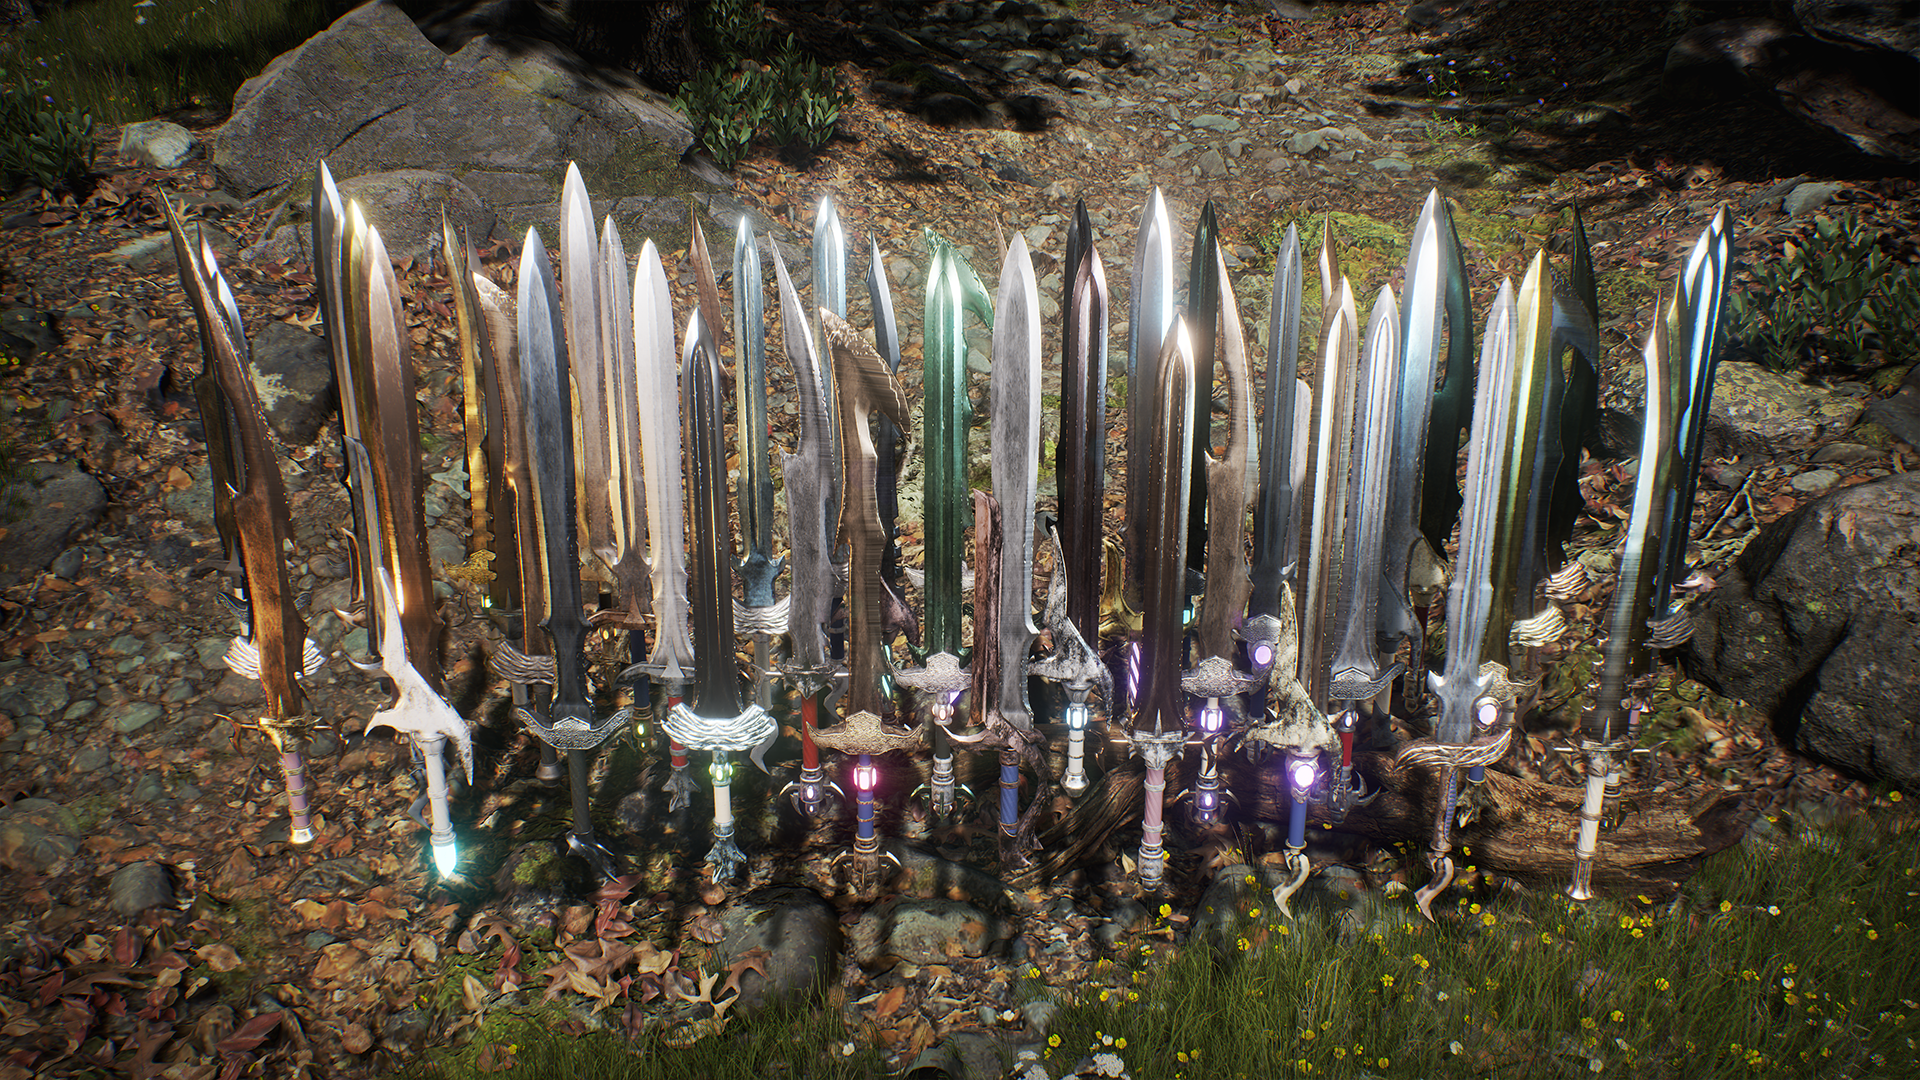 Over 9000 Swords by Broad Strokes